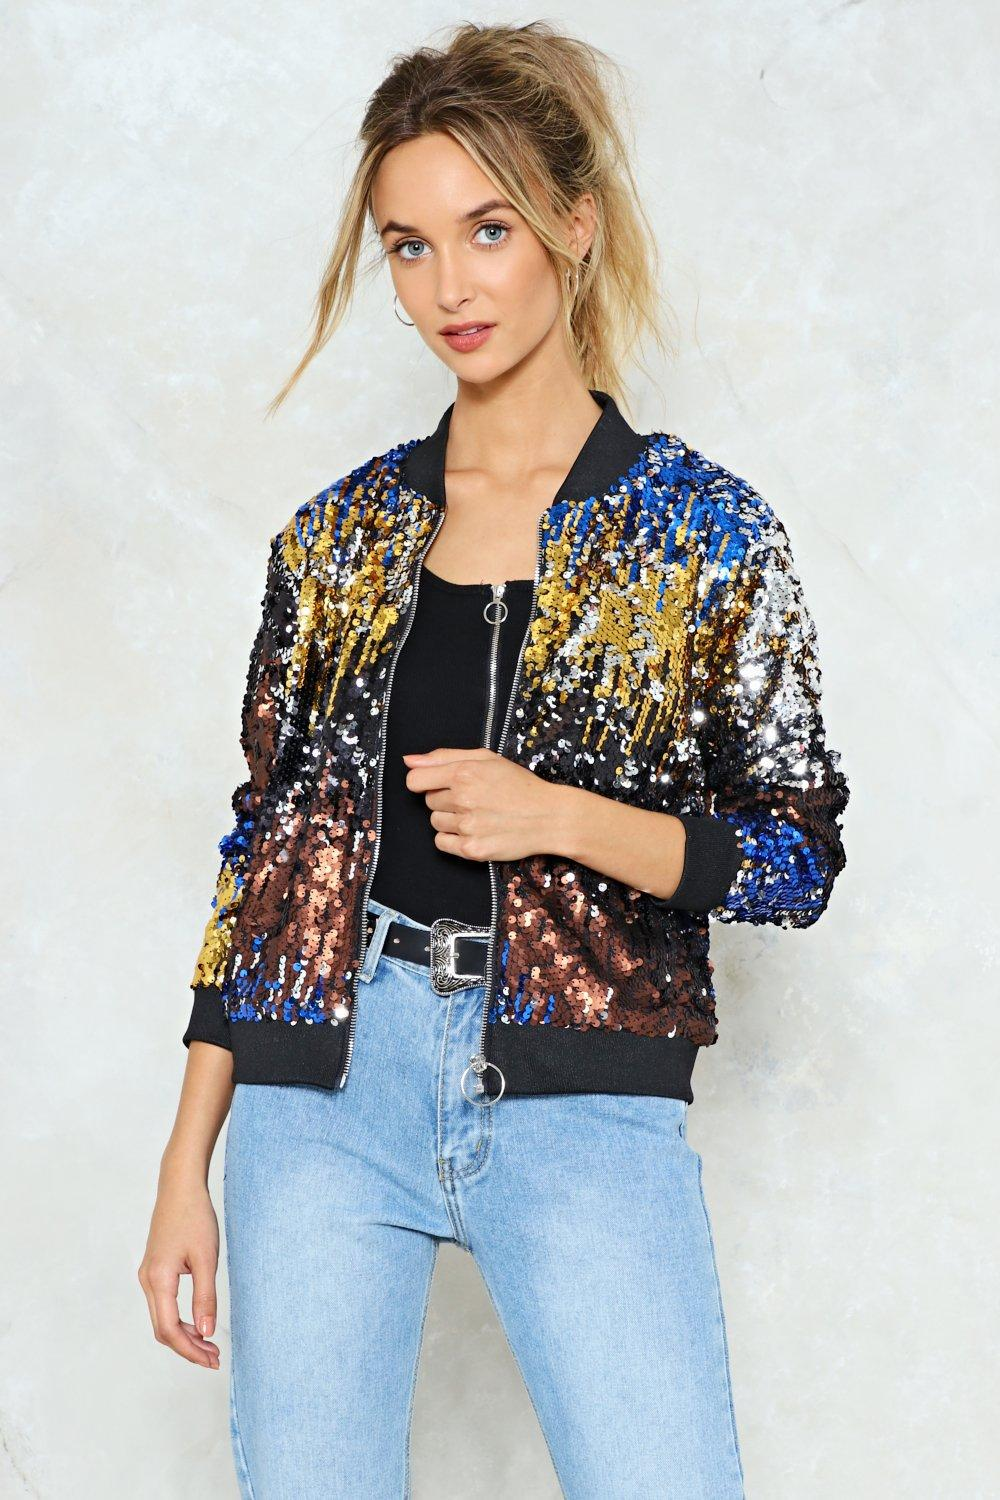 cbf8757fa Lyst - Nasty Gal Talk Of The Town Sequin Bomber Jacket Talk Of The ...